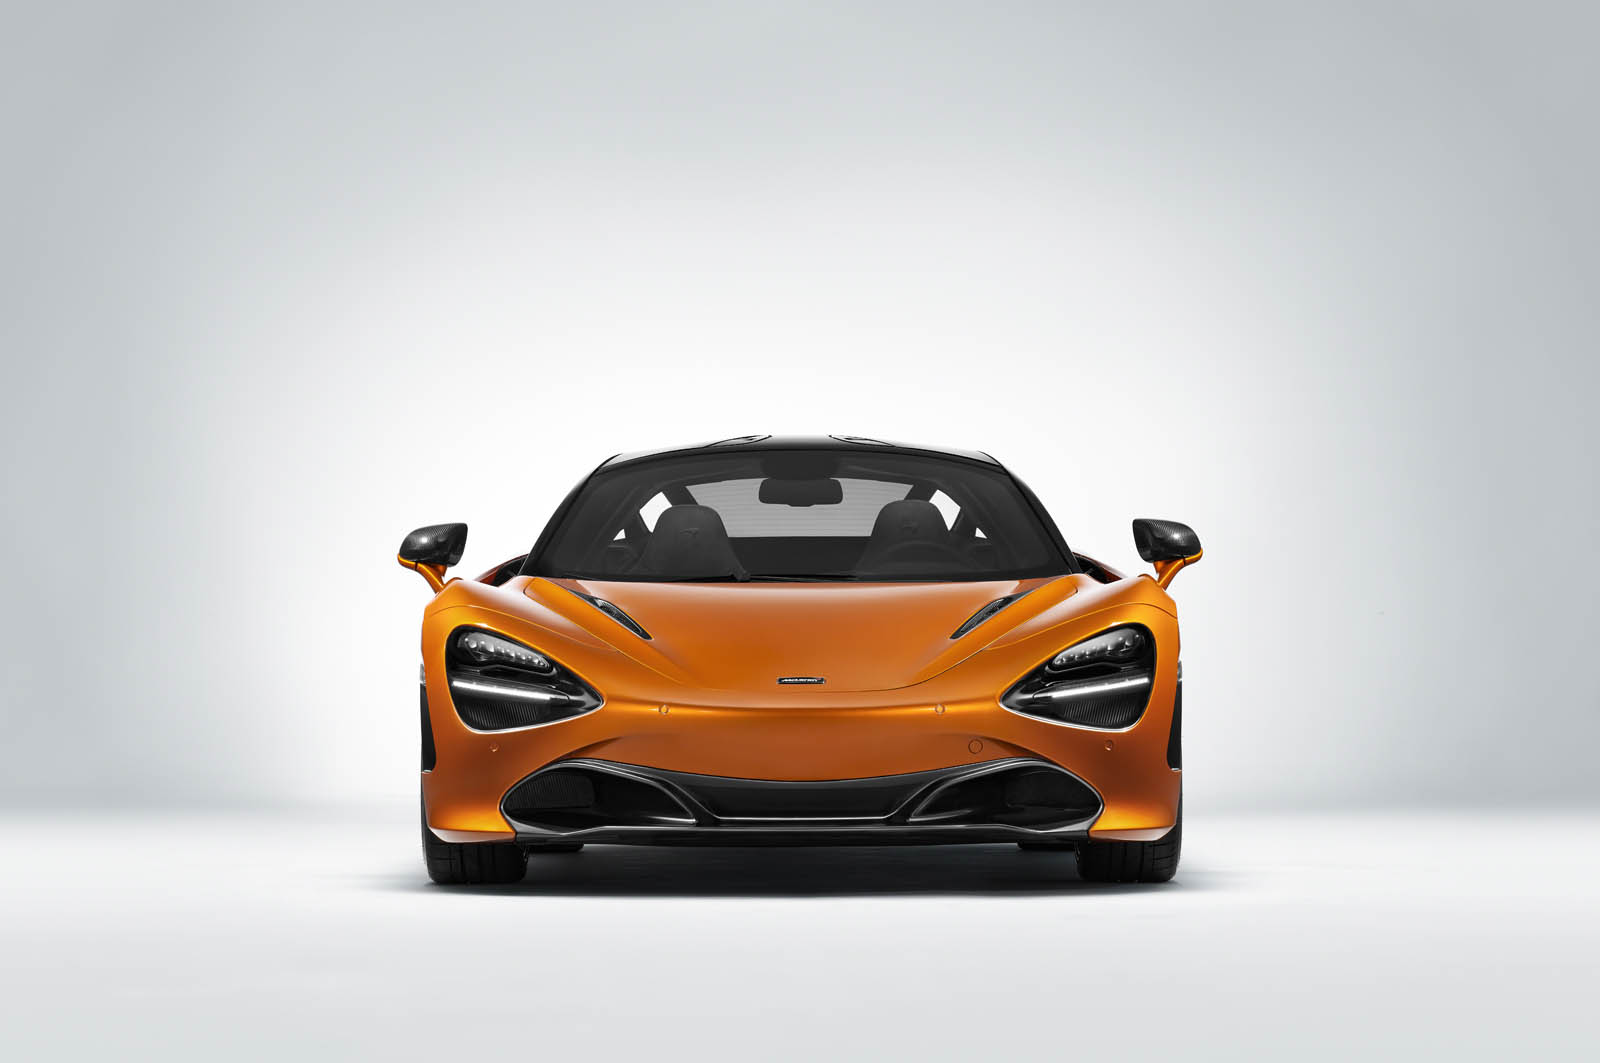 small resolution of mclaren automotive the surrey england based manufacturer of luxury high performance sports and supercars has renewed the super series product family at